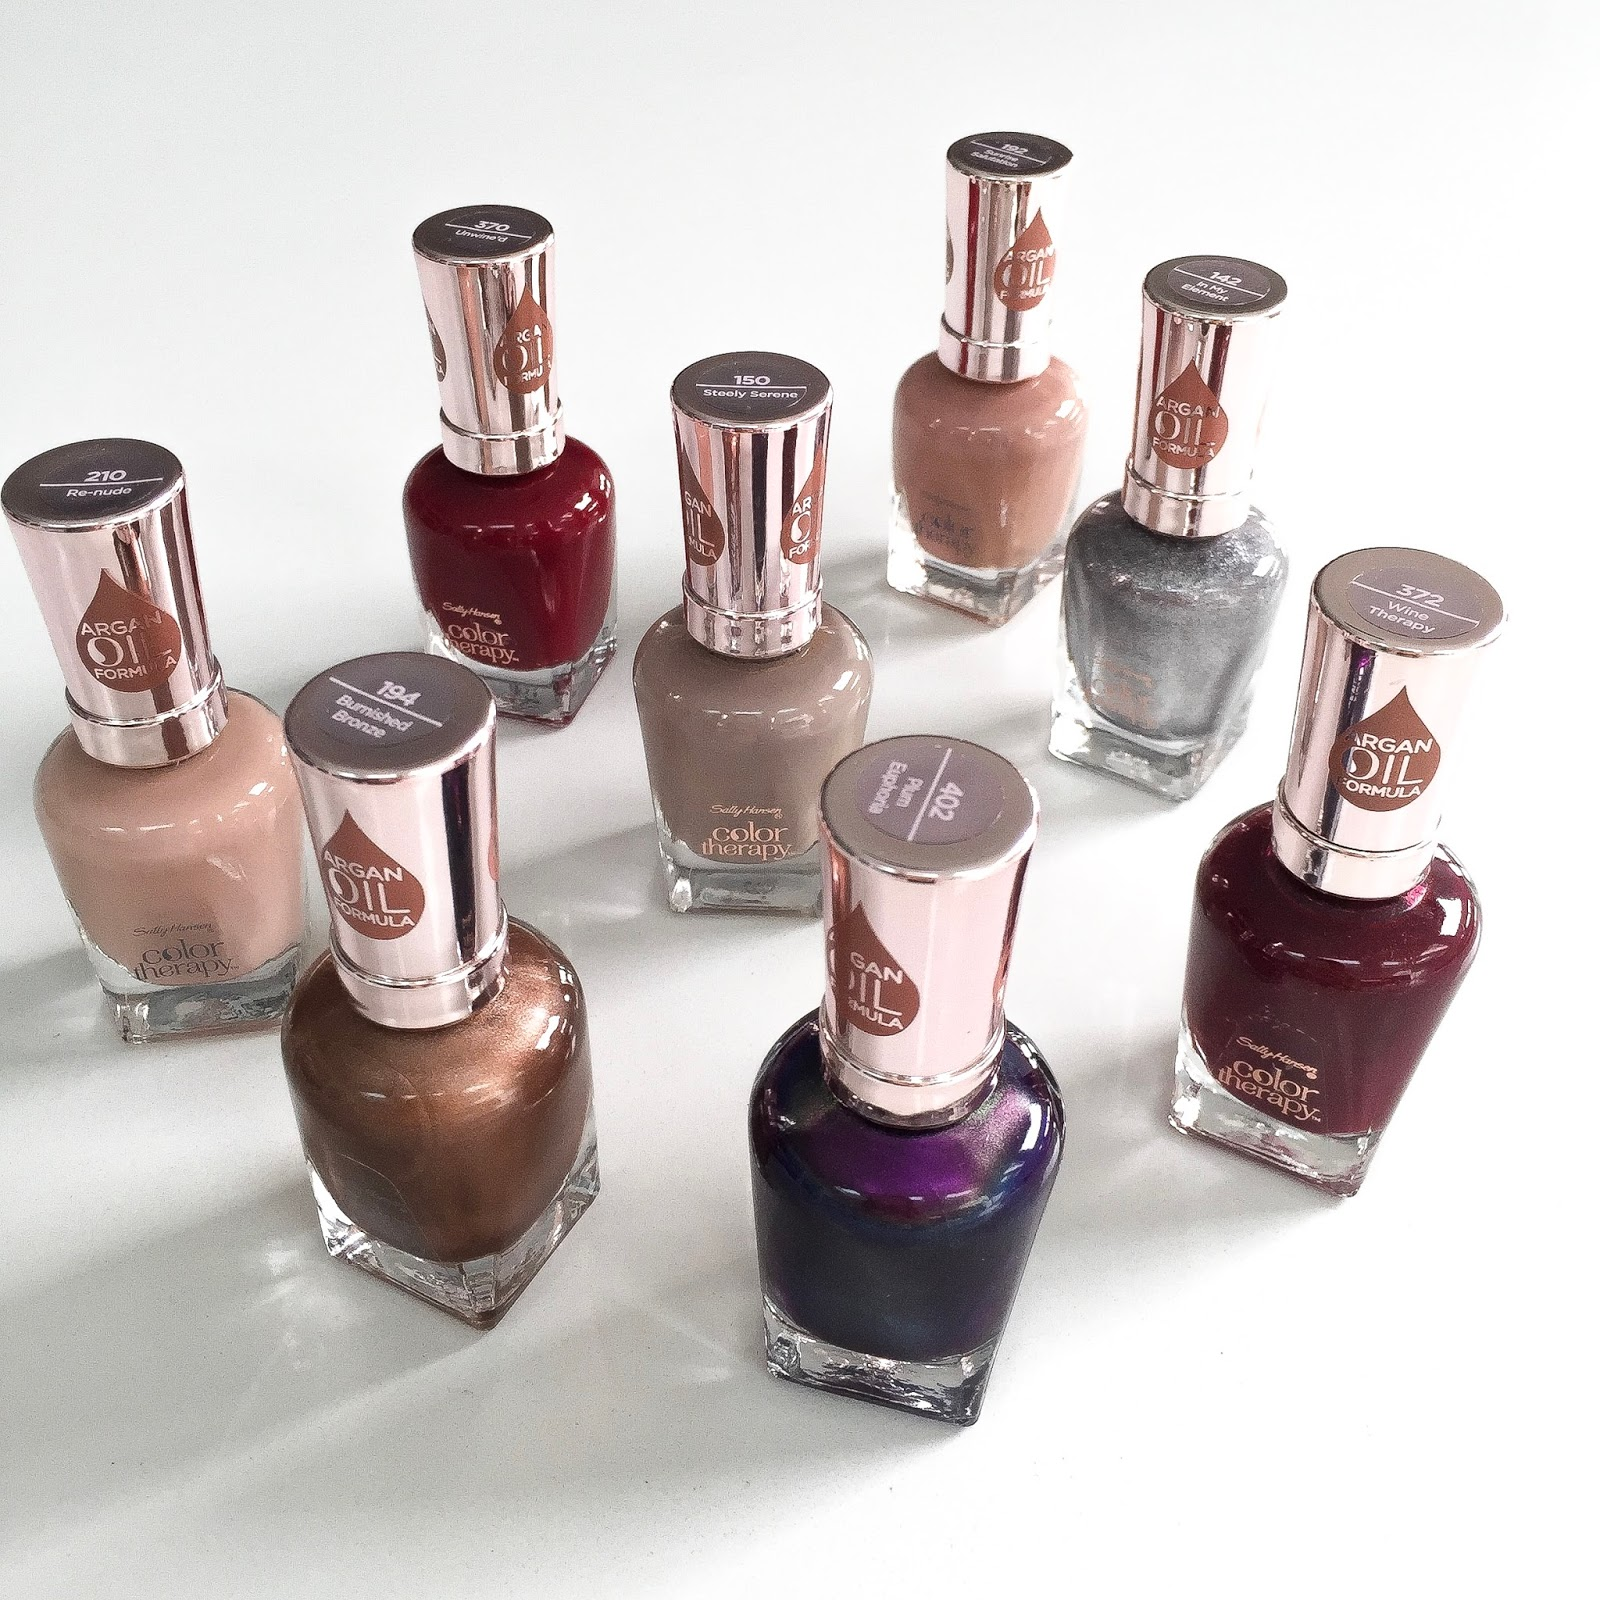 SALLY HANSEN LAUNCHES NEW COLOUR THERAPY WITH ARGAN OIL NAIL POLISH ...